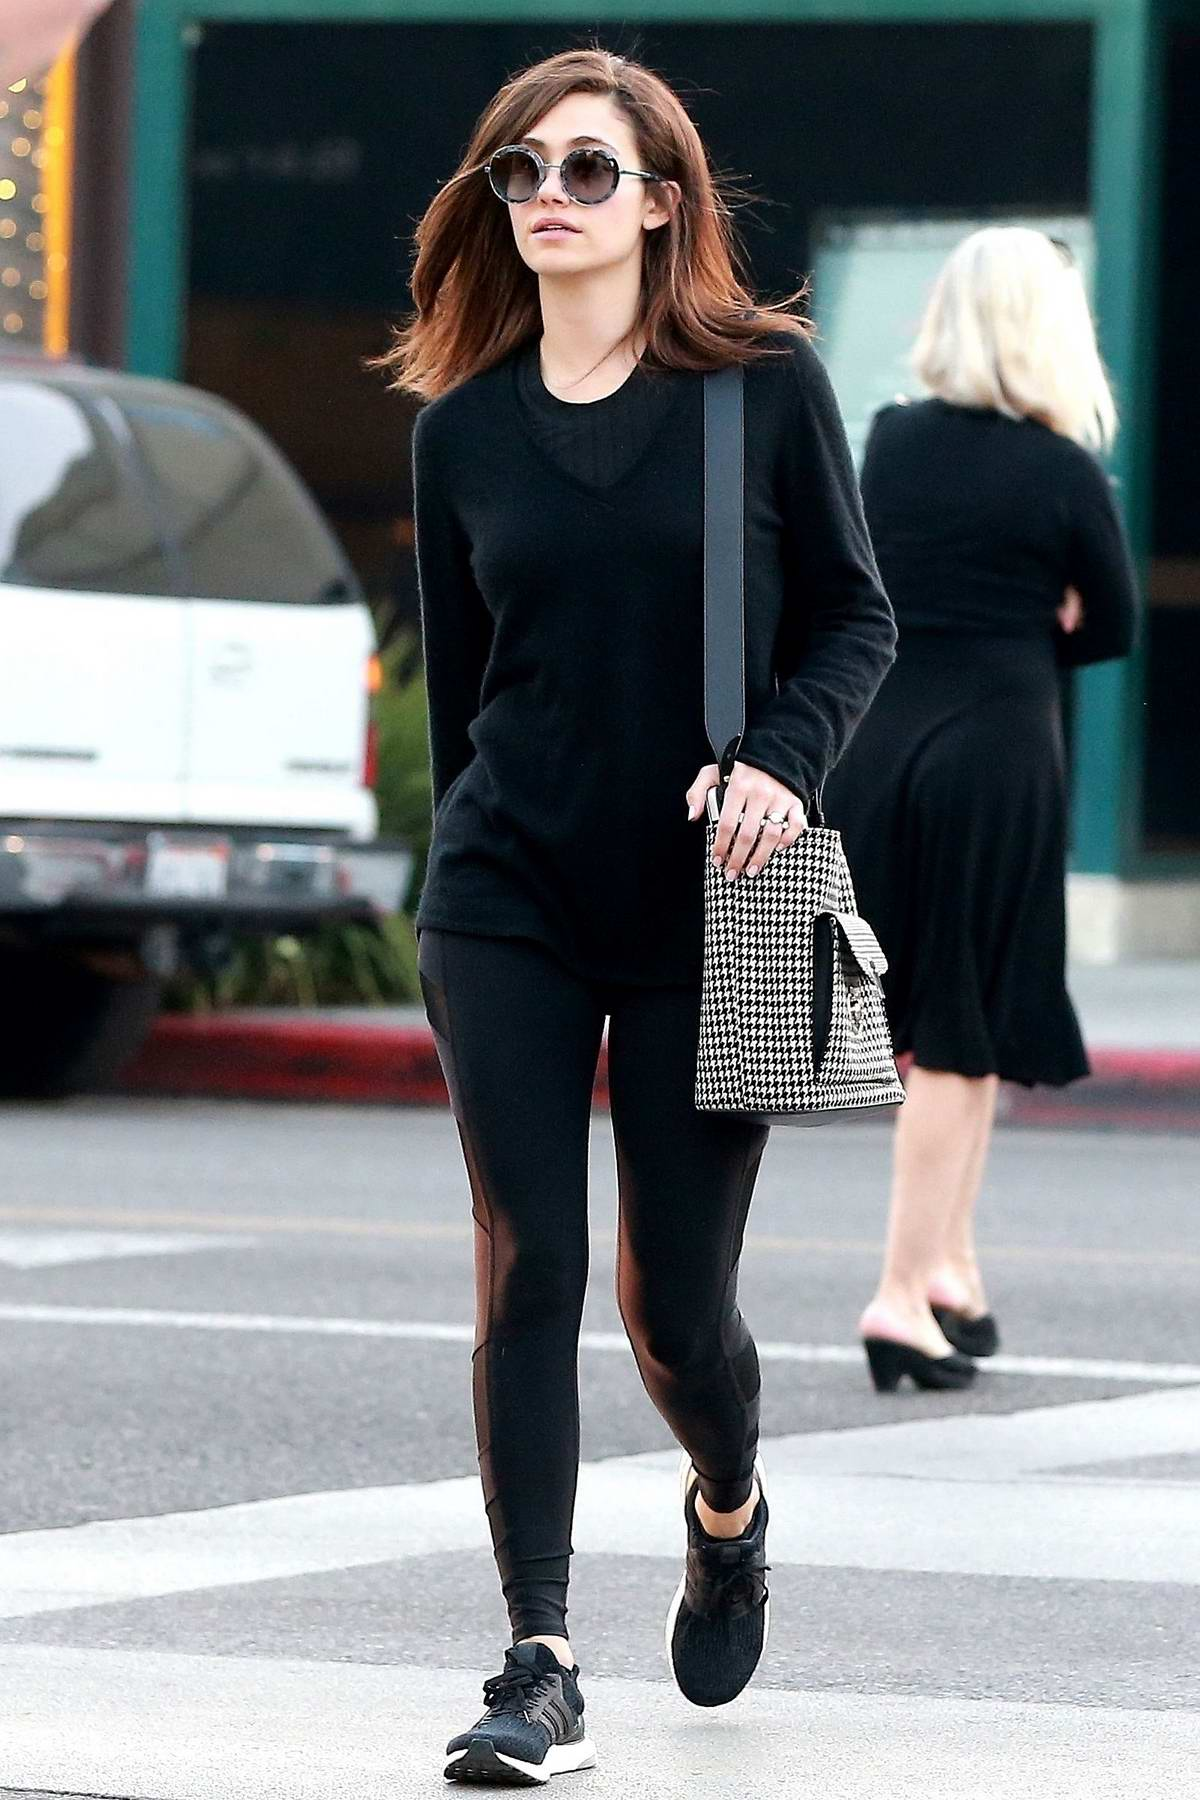 Emmy Rossum rocks all black while shopping in Beverly Hills, Los Angeles